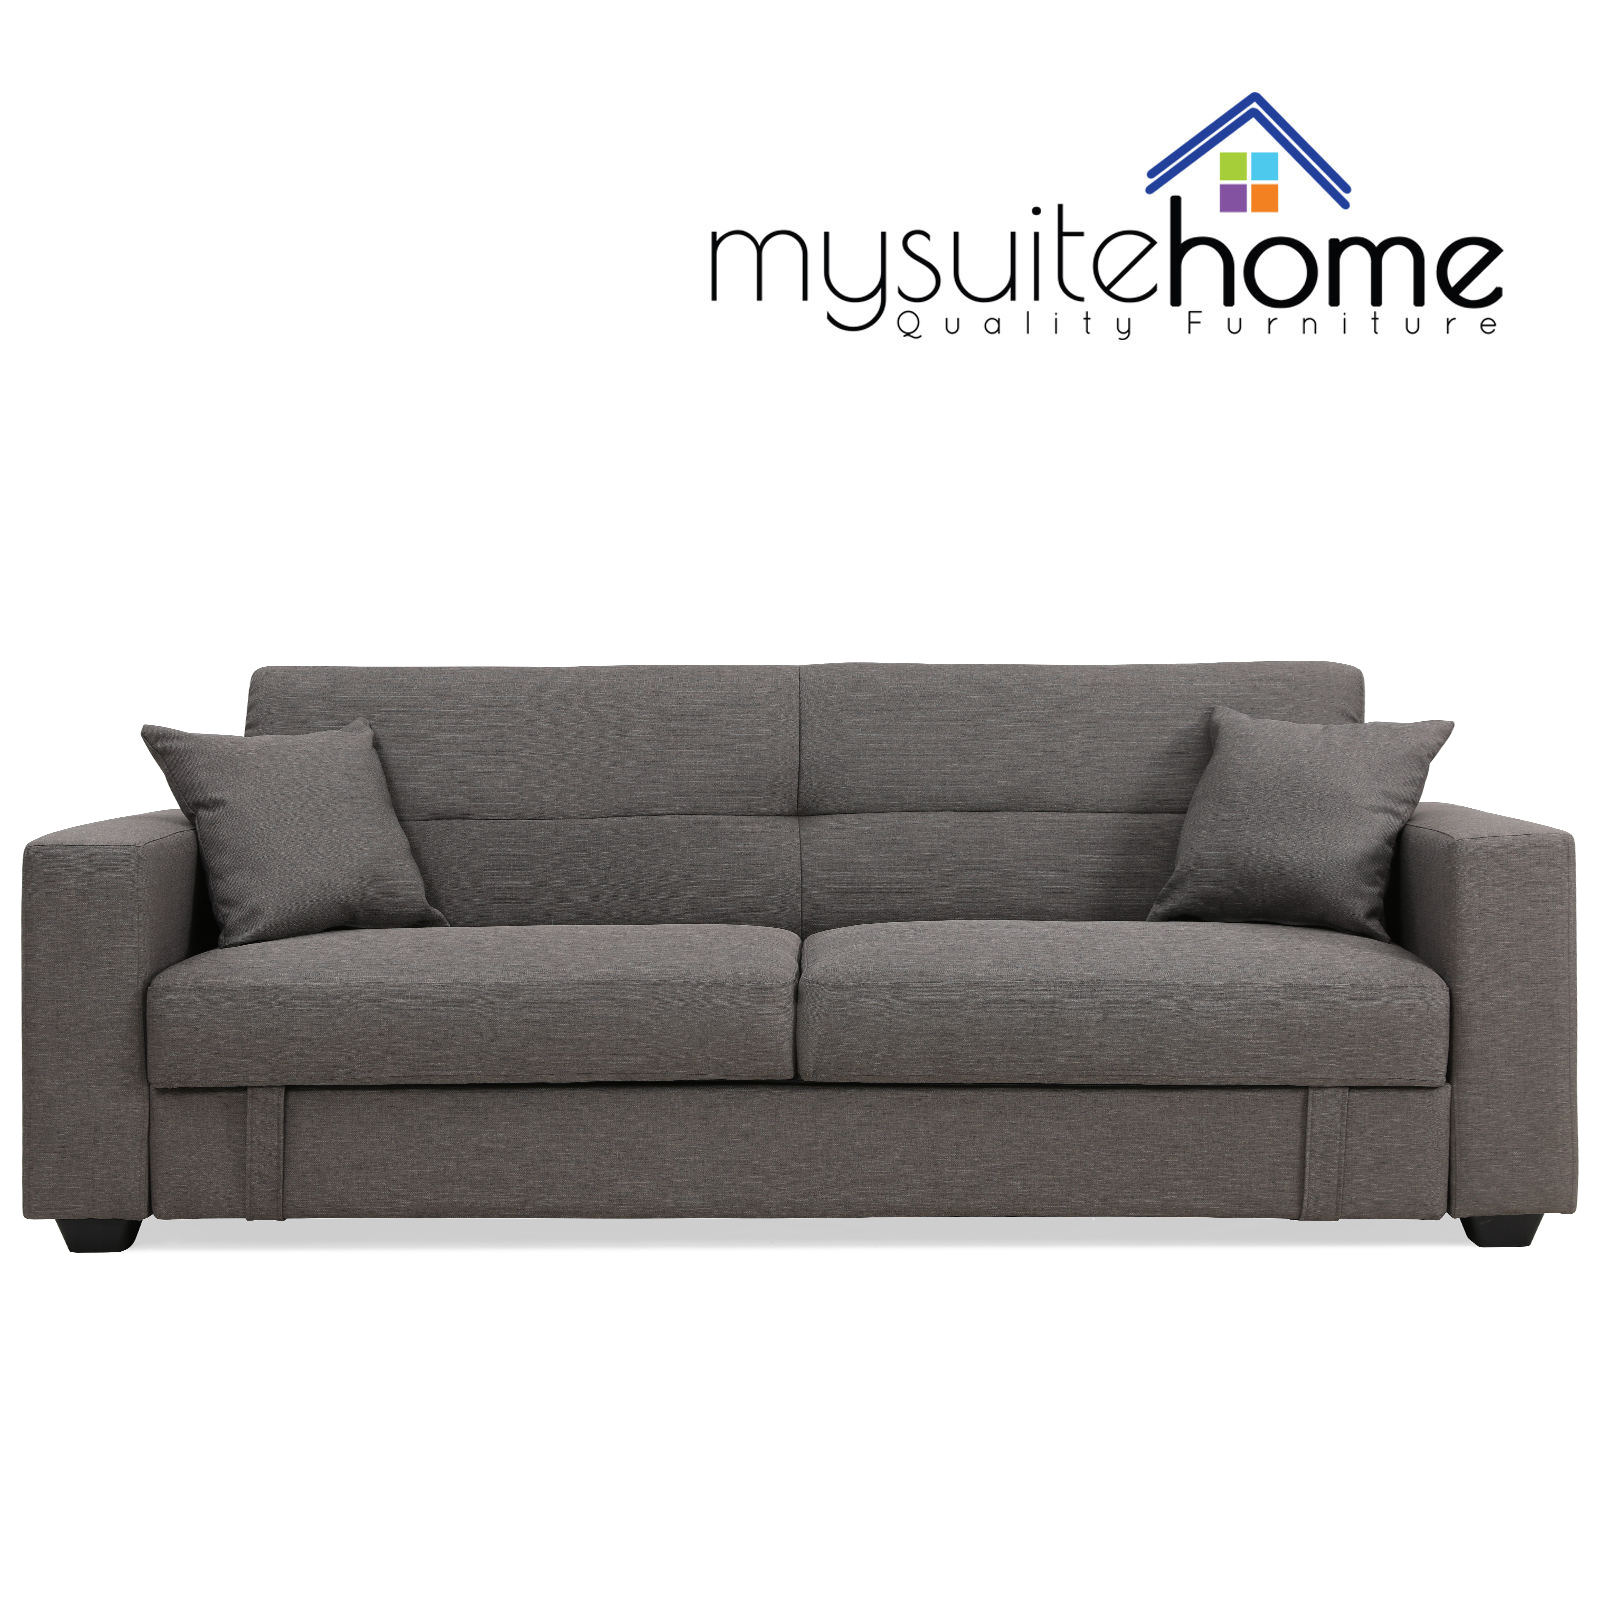 2 seater sofa bed with storage for Sofa bed 3 seater